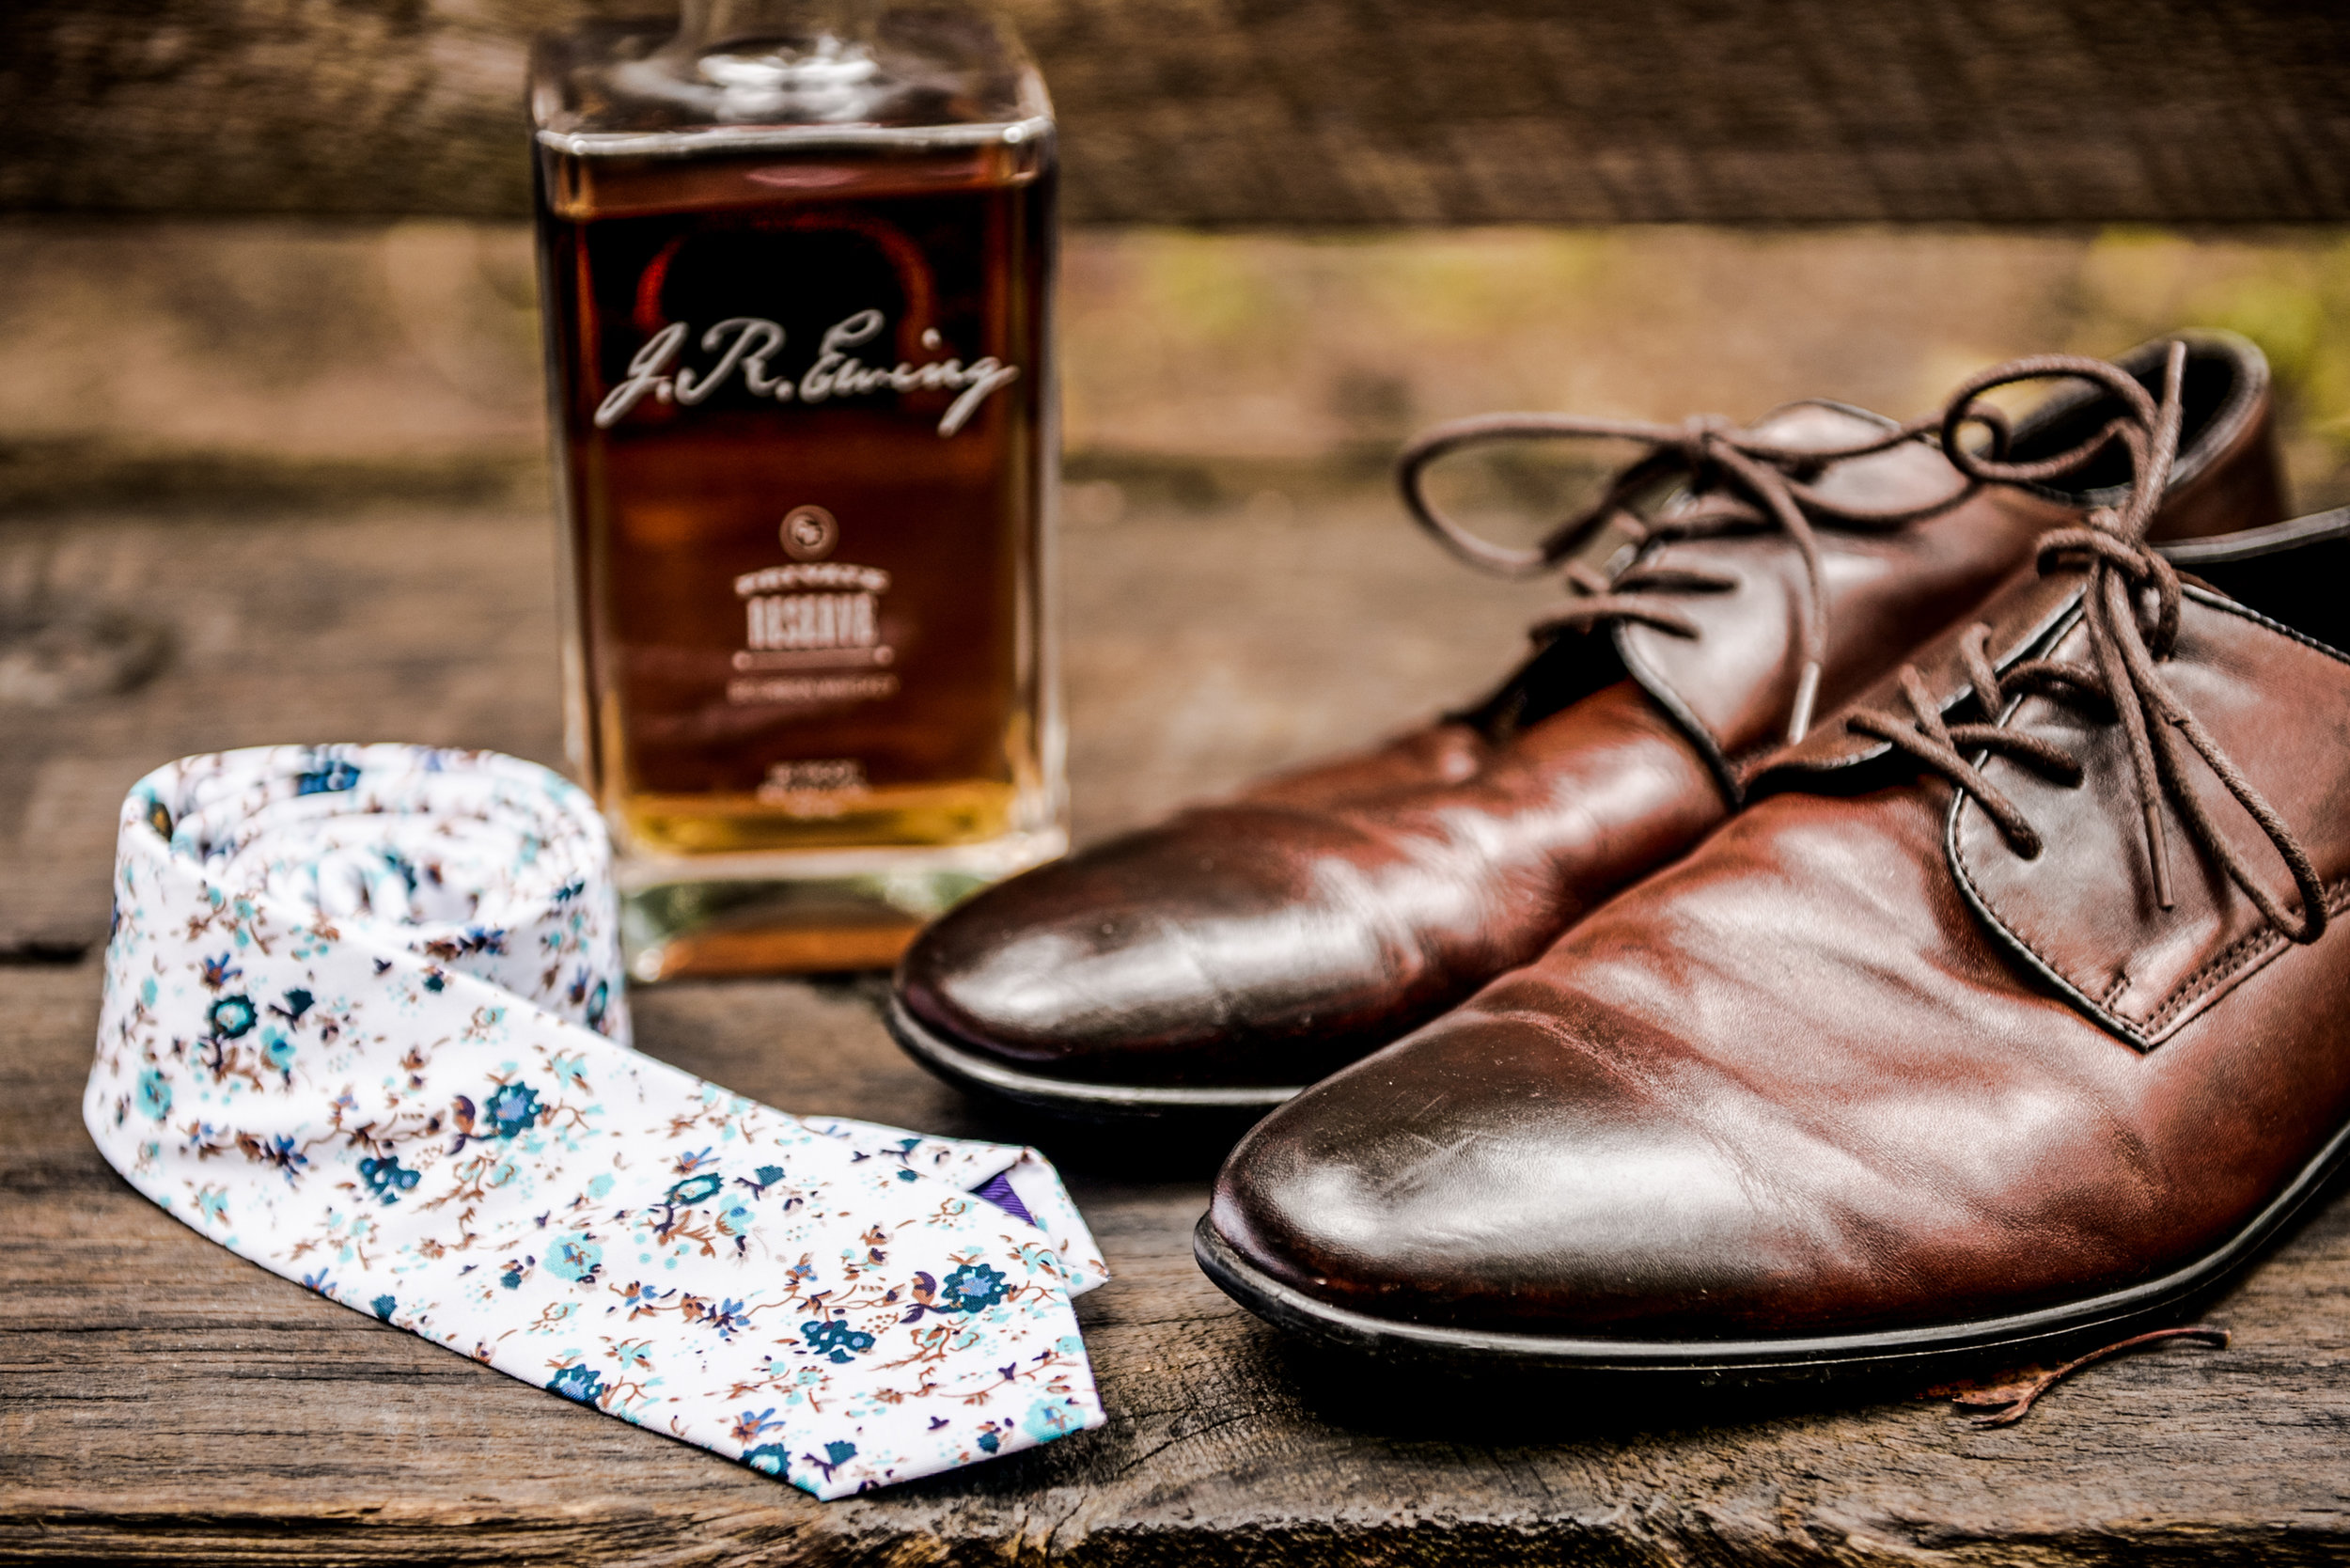 Grooms details tie whisky shoes